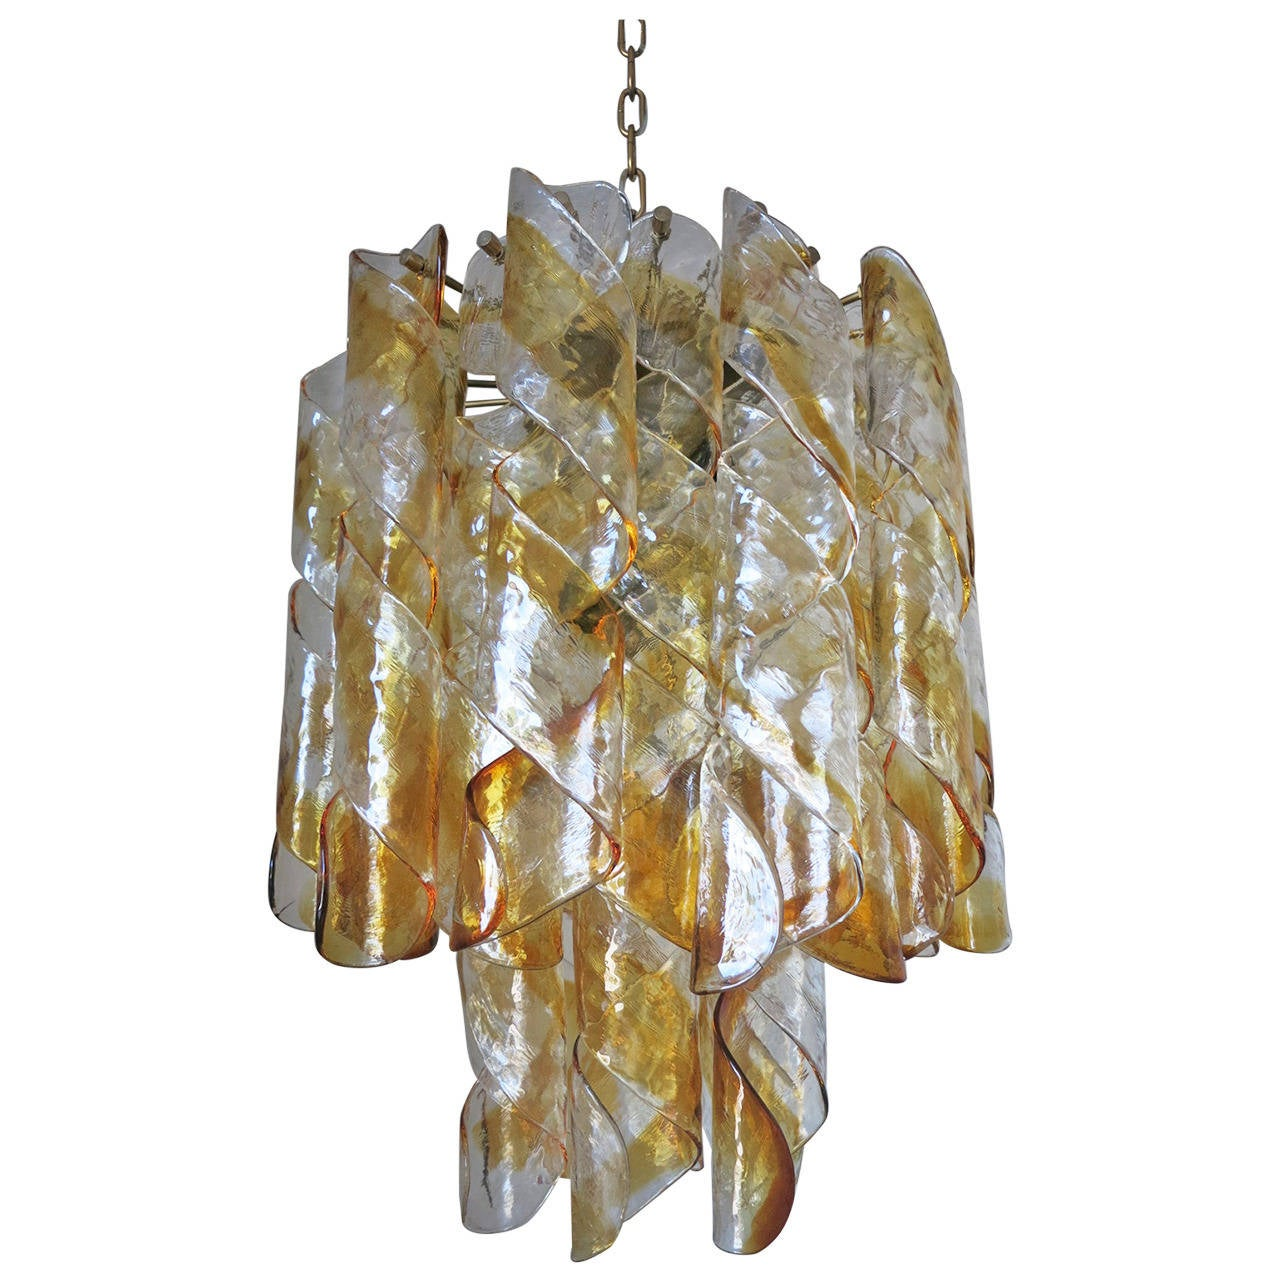 Mazzega Clear and Amber Twists Chandelier